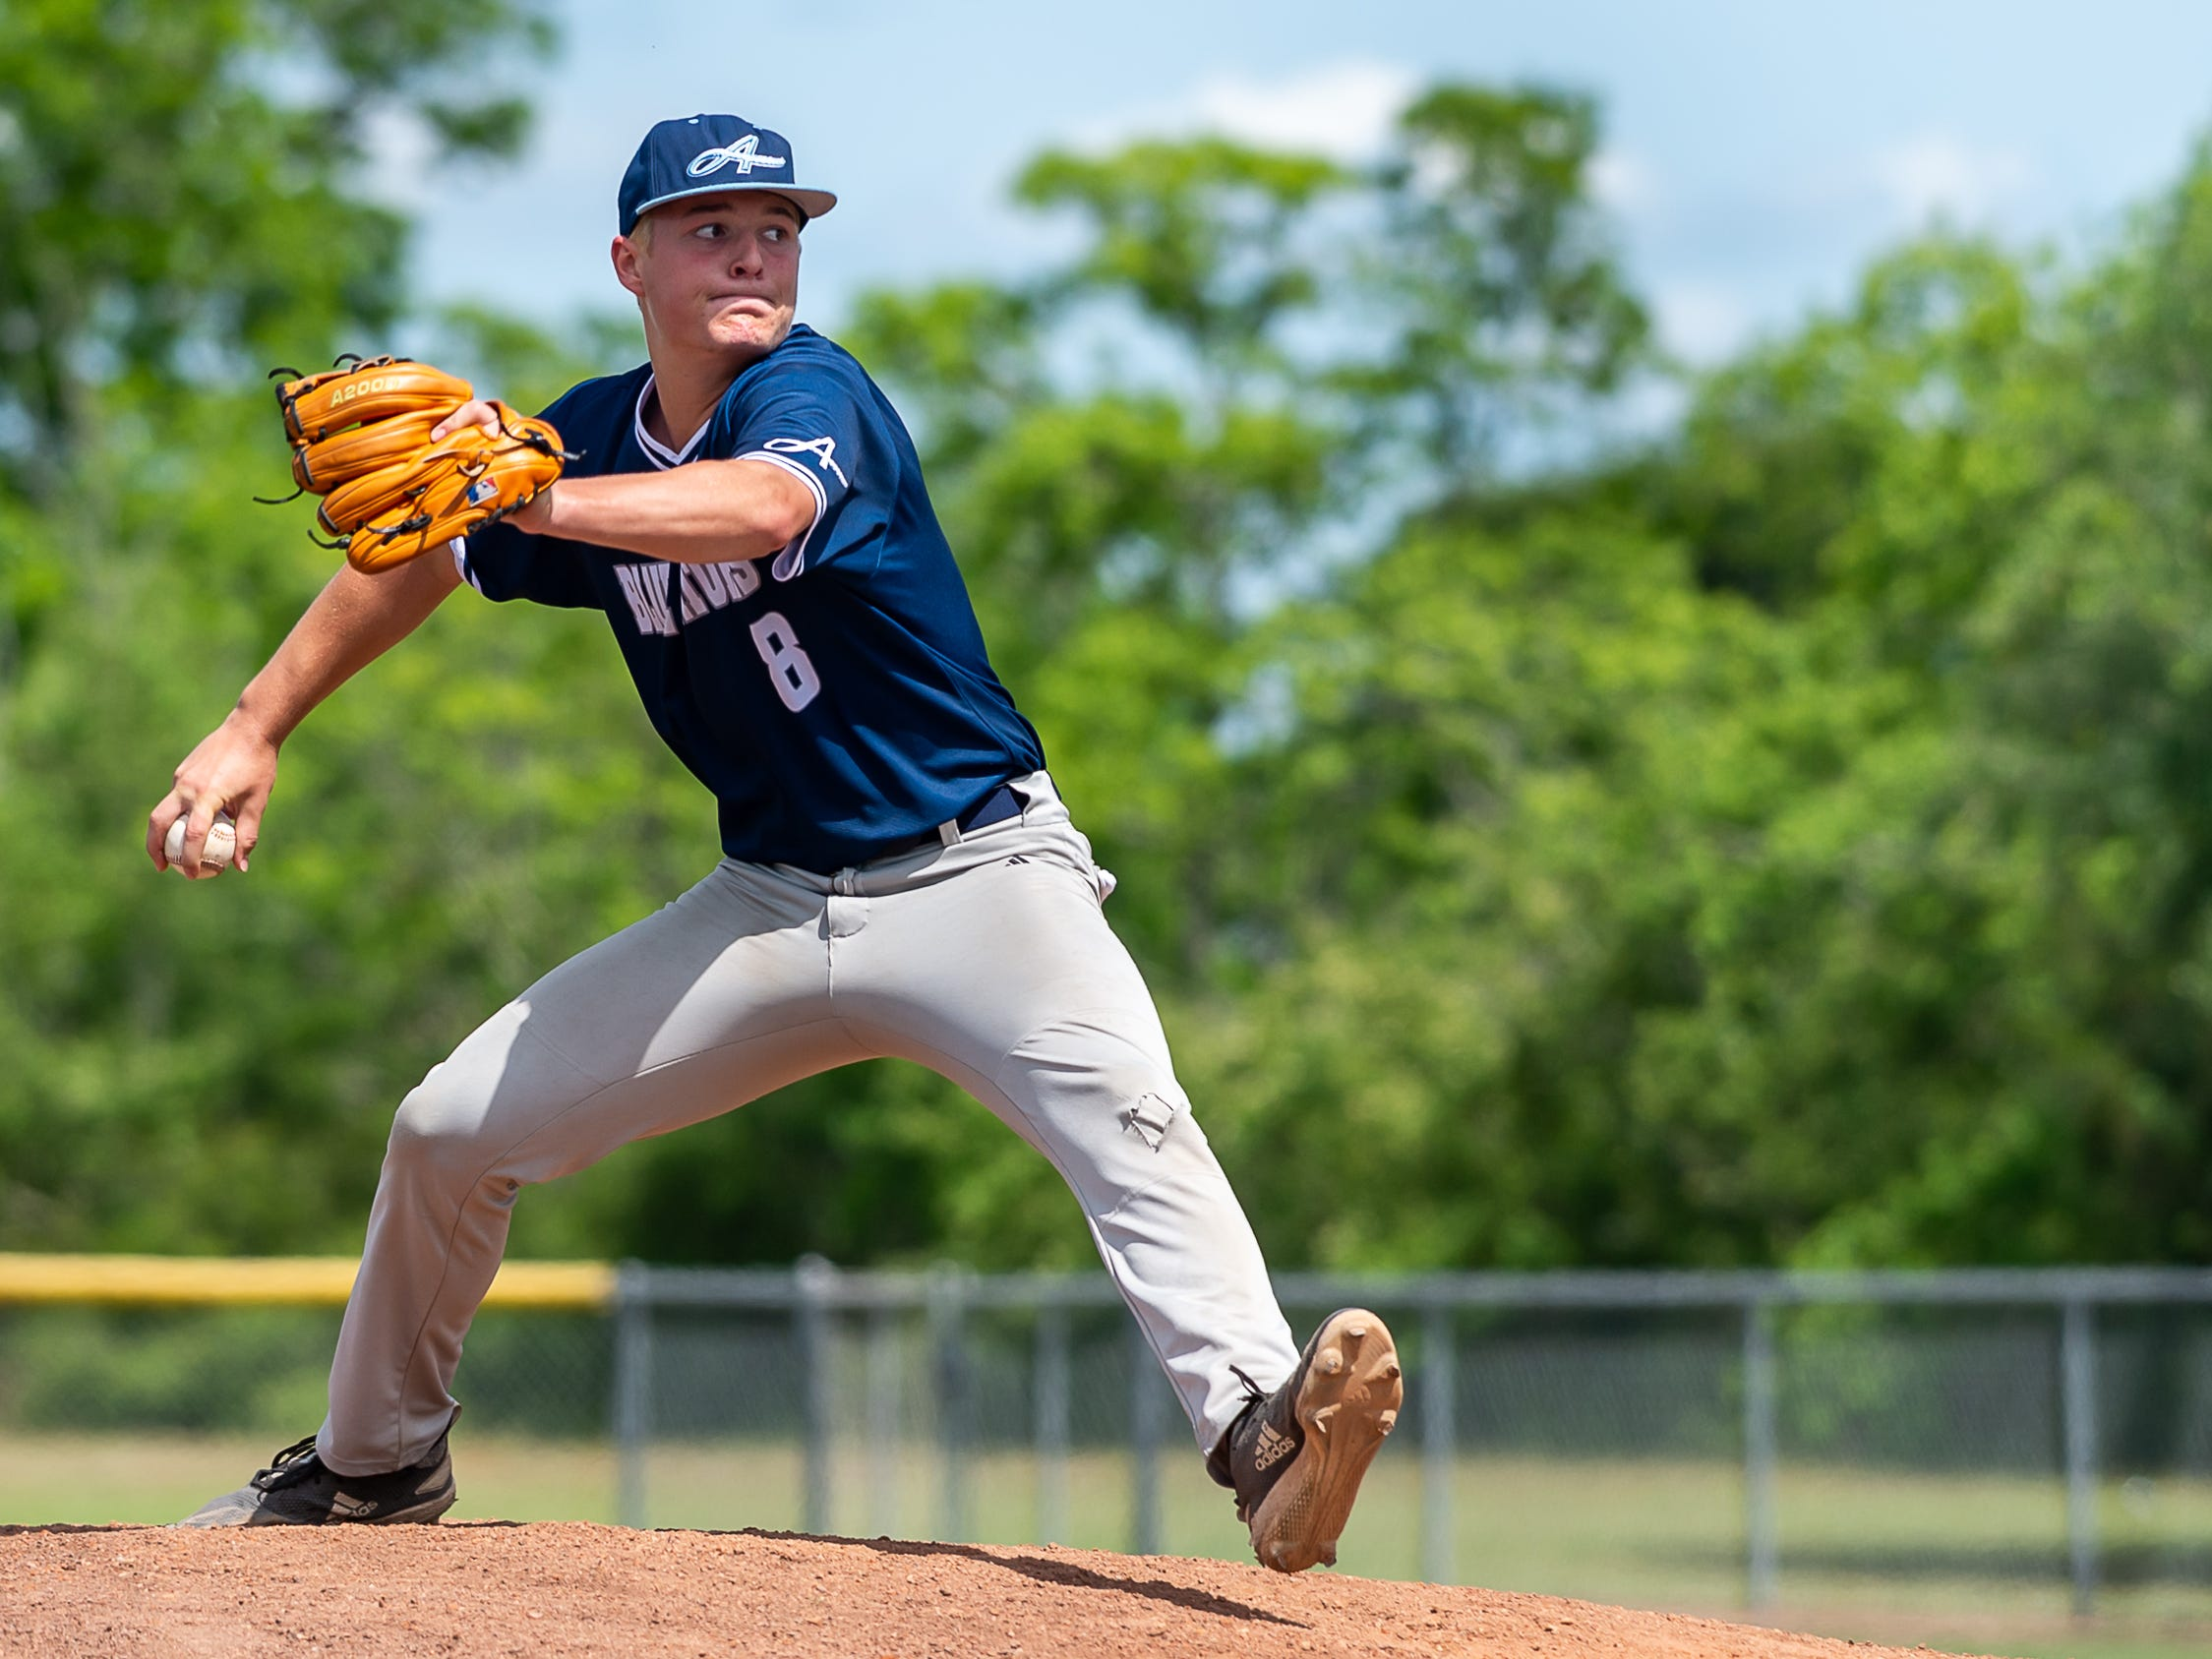 Cole Simon on the mound as the Ascension Blue Gators take on Holy Savior Menard in game two of the semi final round of the LHSAA playoffs. Sunday, May 5, 2019.